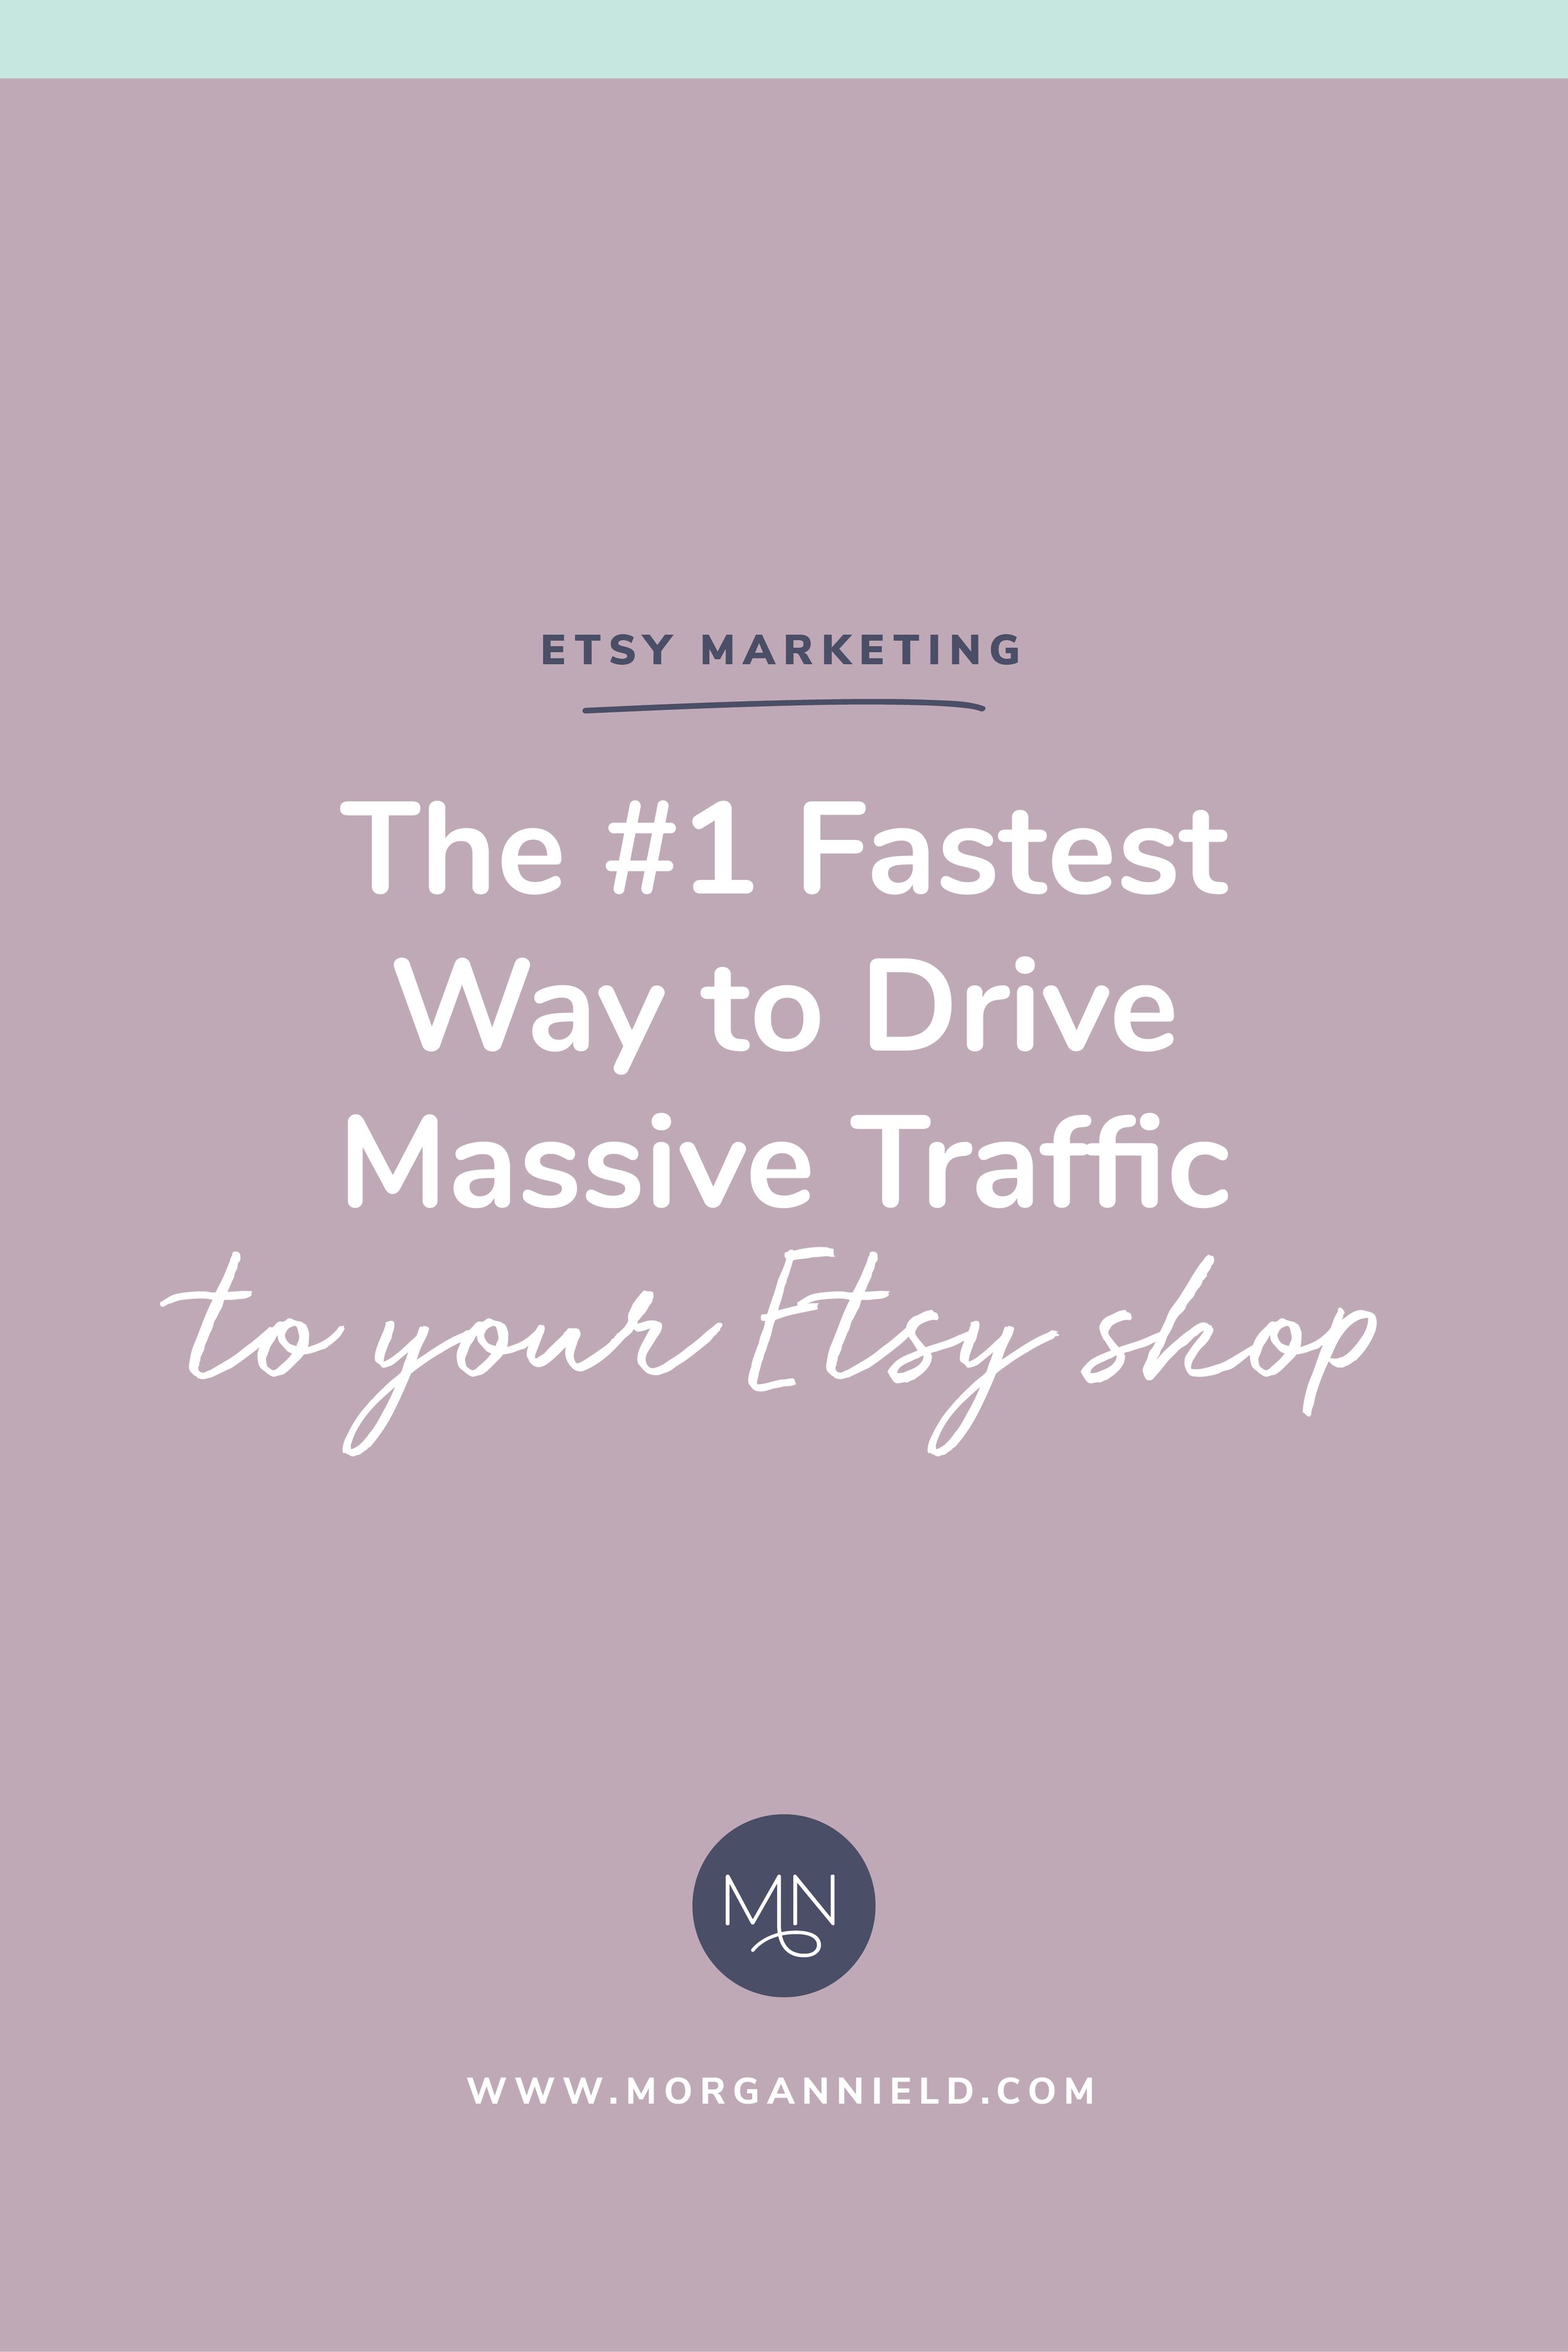 The #1 Fastest Way to Drive Massive Traffic to Your Etsy Shop | When you're just starting out on Etsy, it's hard to drive that initial traffic to make those first few sales. Working with social media influencers and bloggers is THE BEST and FASTEST way to get your product in front of thousands of eyes at relatively little cost to you. Click through to the blog to learn EXACTLY how I pitch my products to influencers! >>